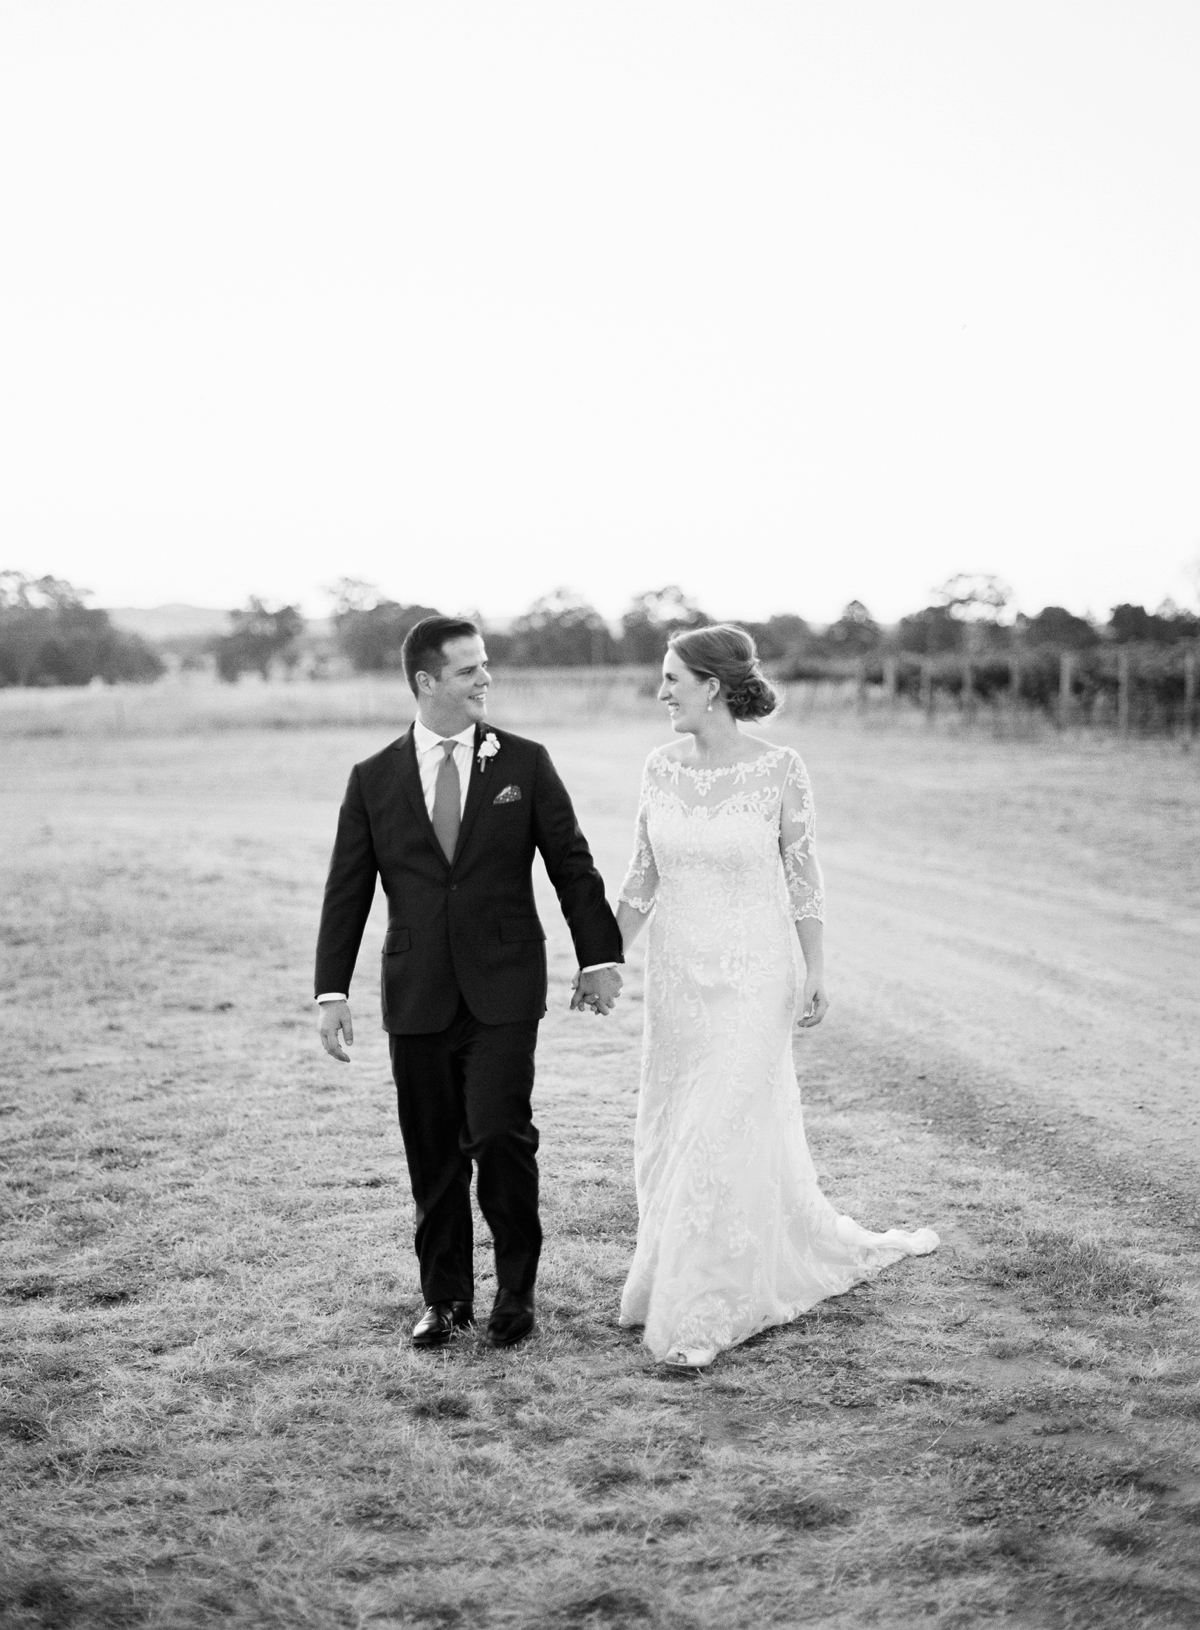 The Vine Grove Mudgee Wedding, Photography by Mr Edwards_1834.jpg